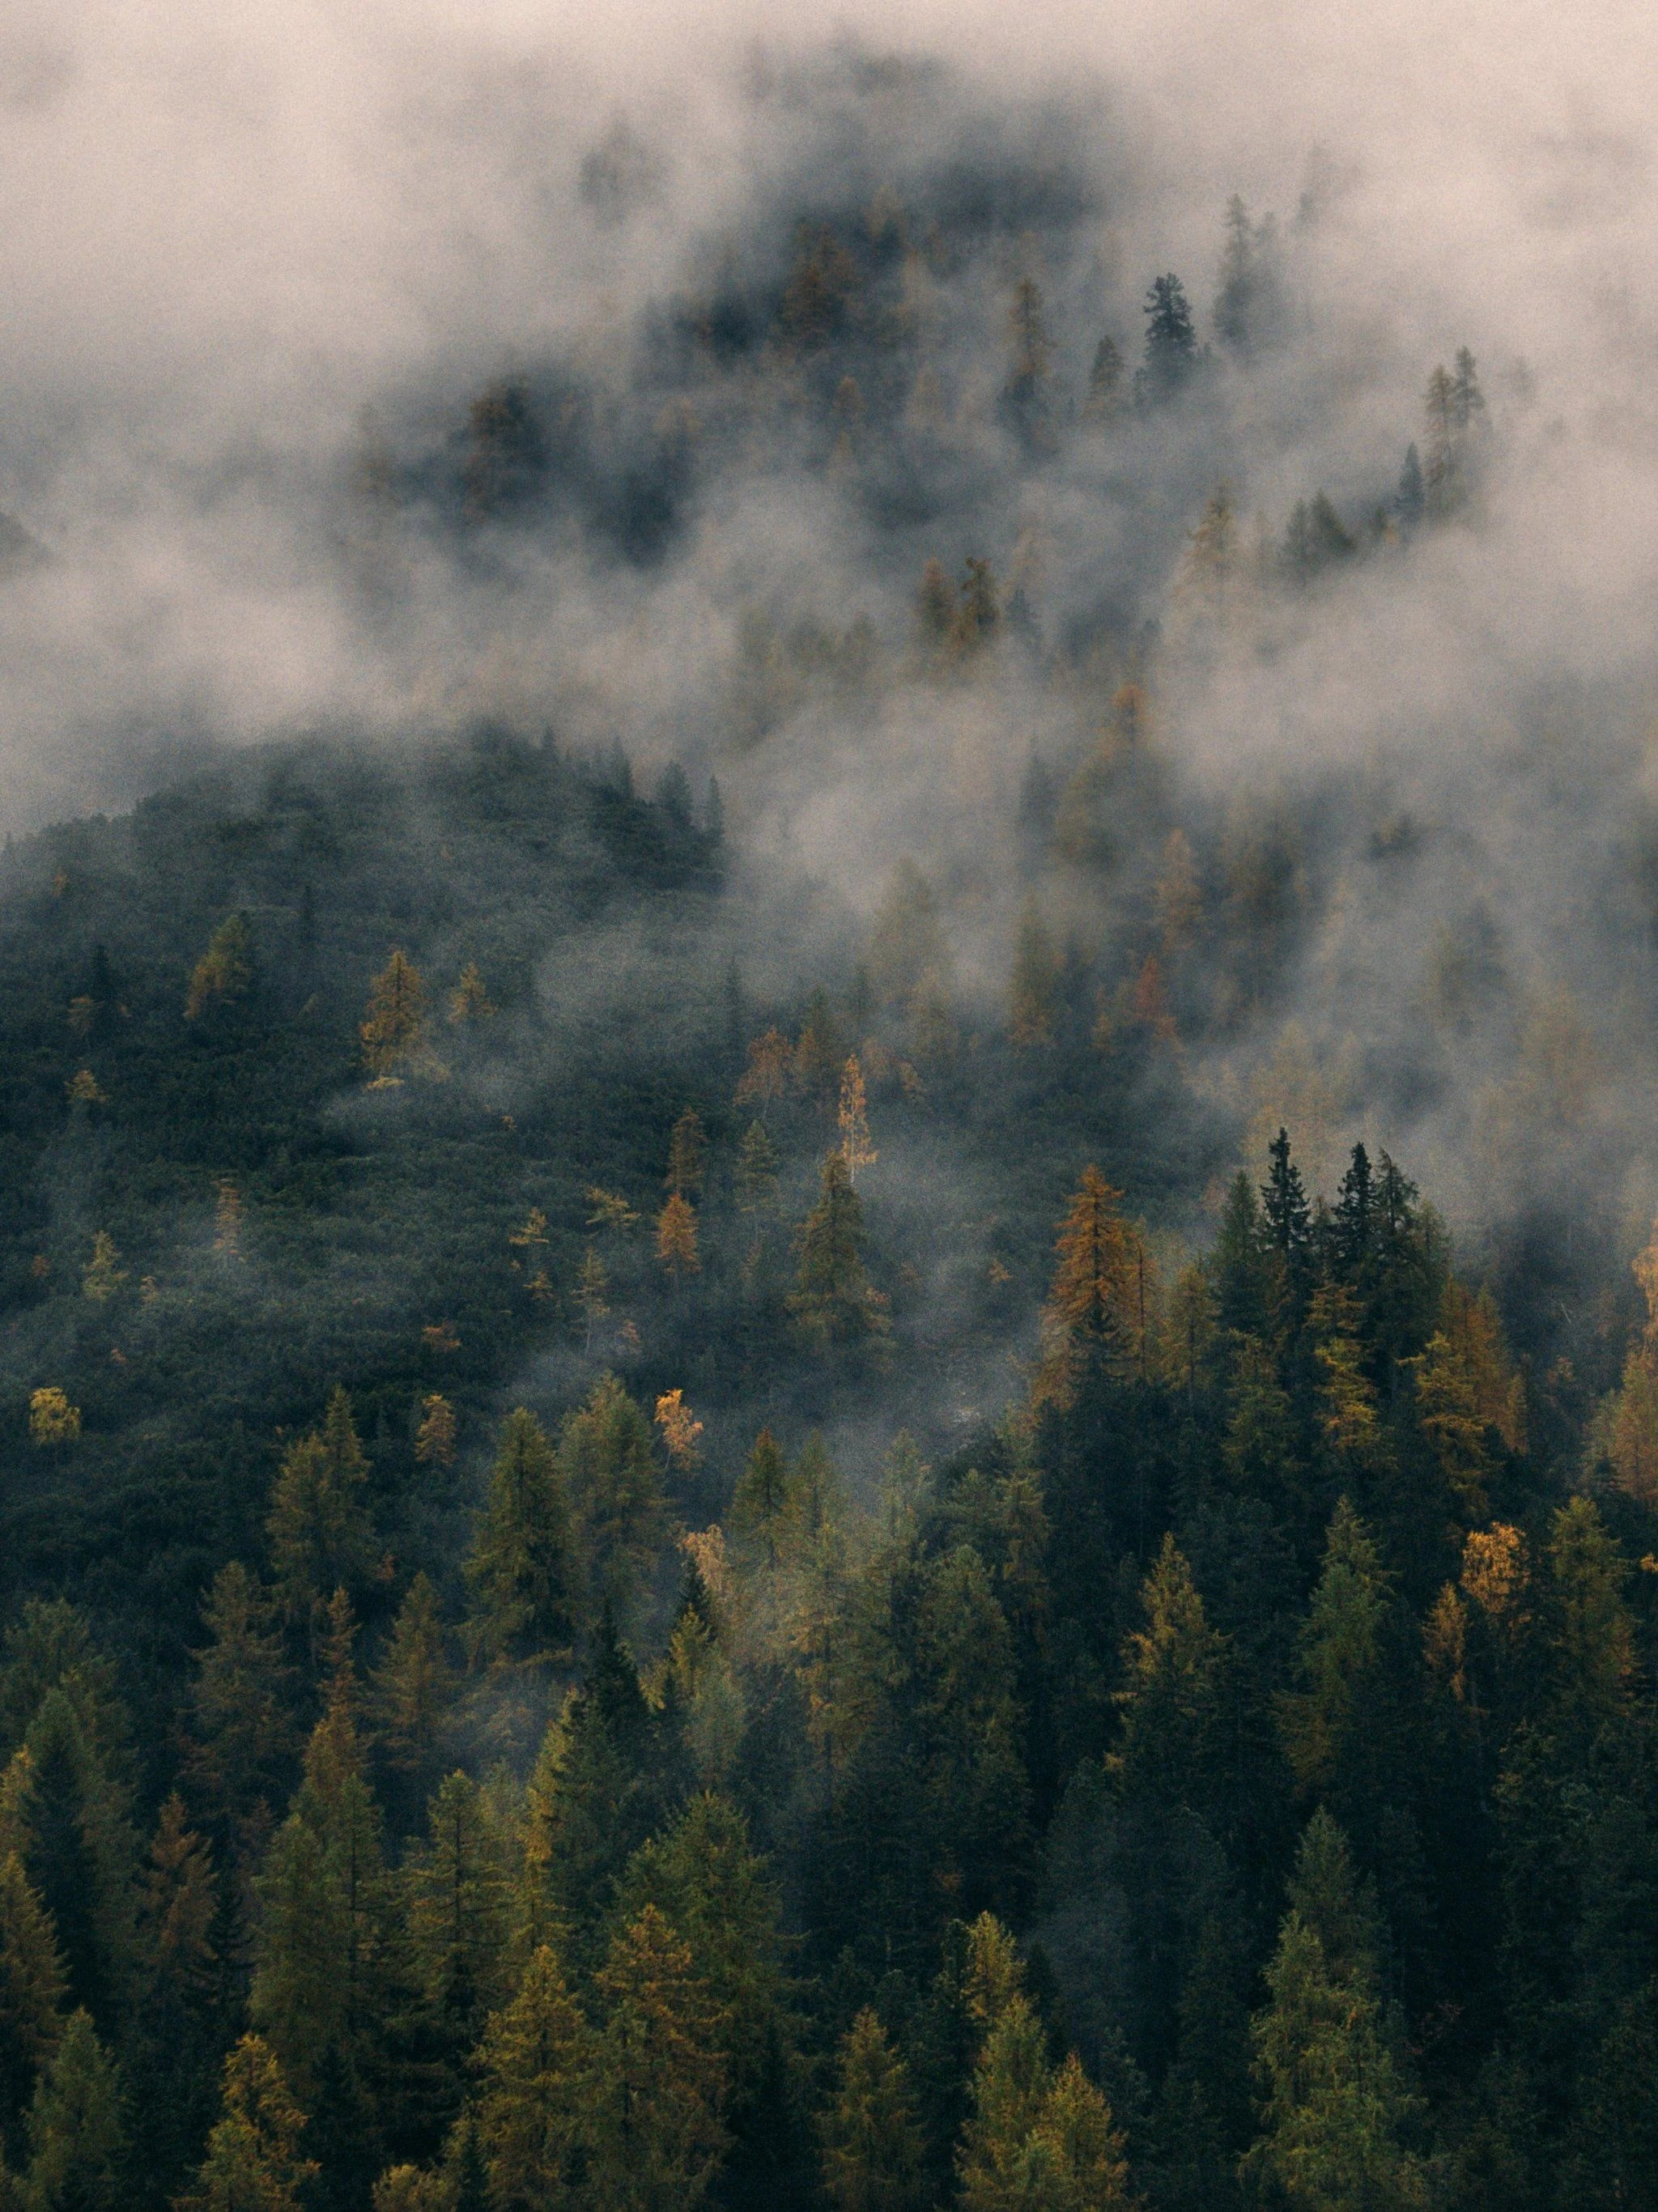 Aesthetic Foggy Forest Wallpaper : aesthetic, foggy, forest, wallpaper, Foggy, Forest, Wallpapers, Backgrounds, WallpaperAccess